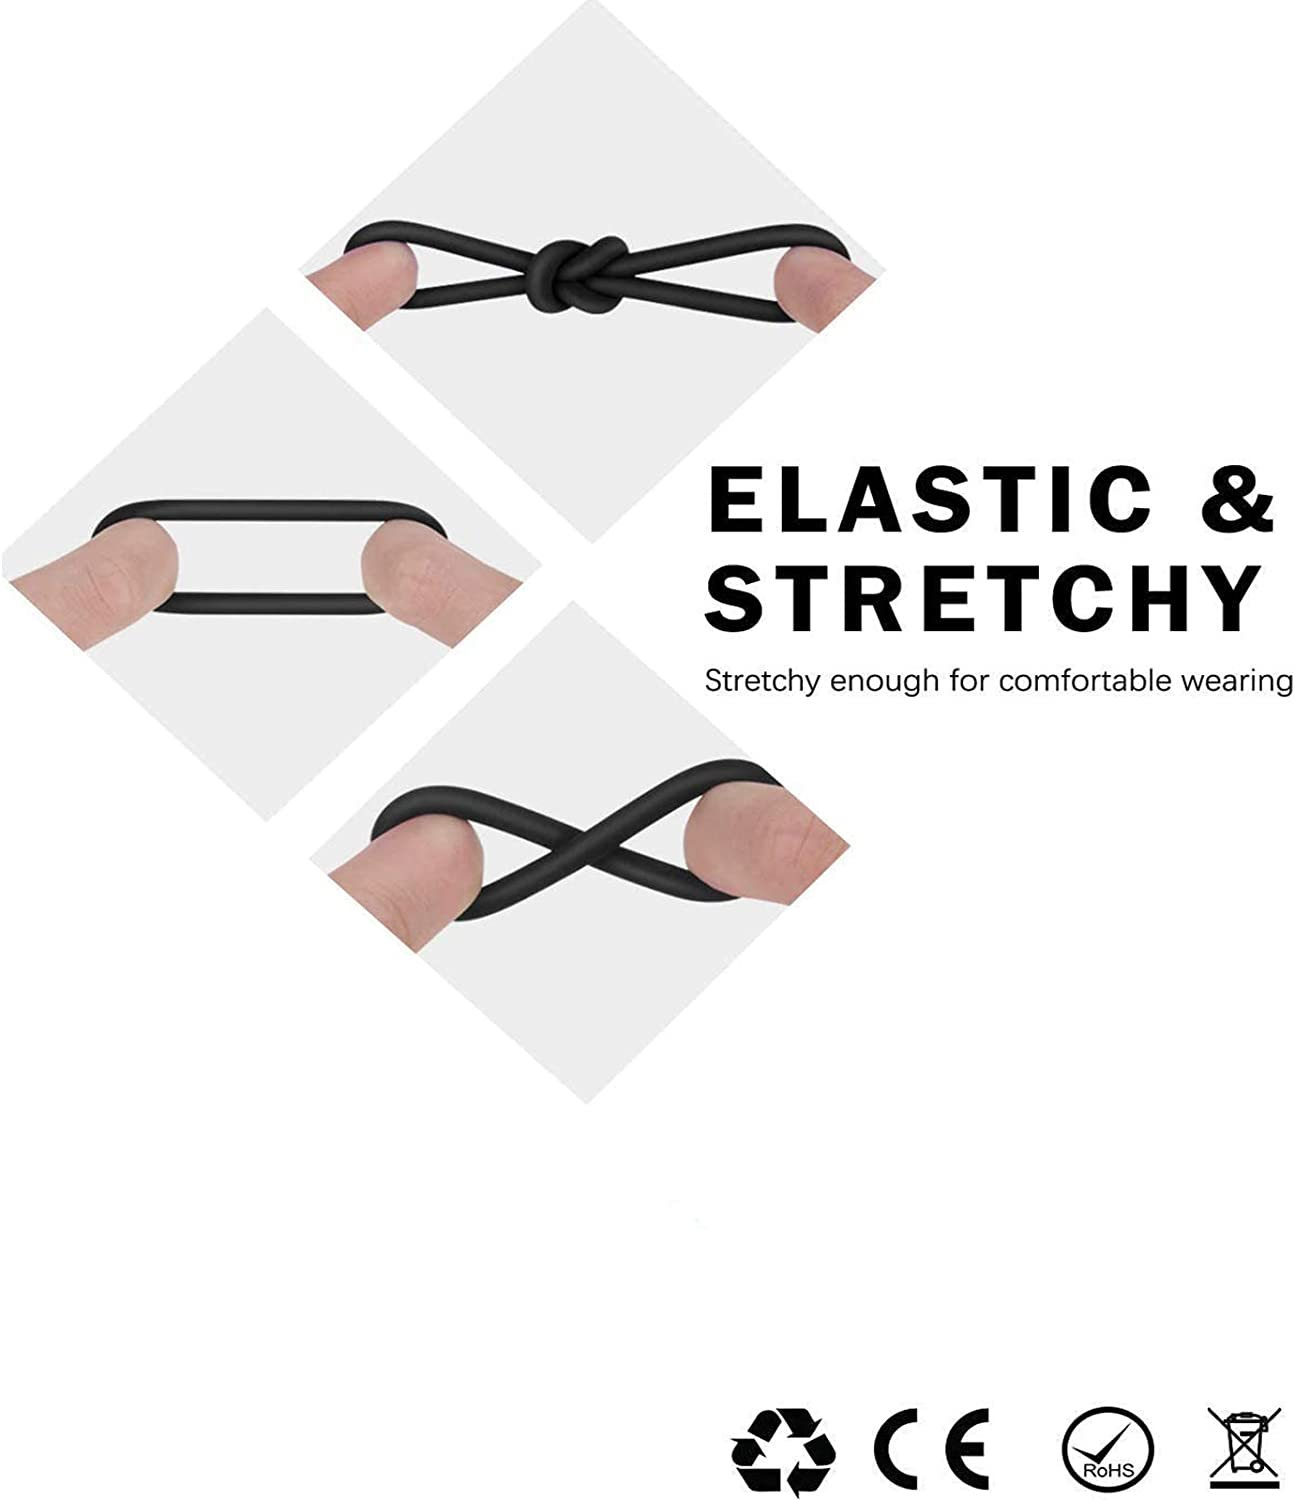 CXue-Super Soft and Stretchy Triple Ring Wand Enhancer Massager for Men Patrol of Satisfaction